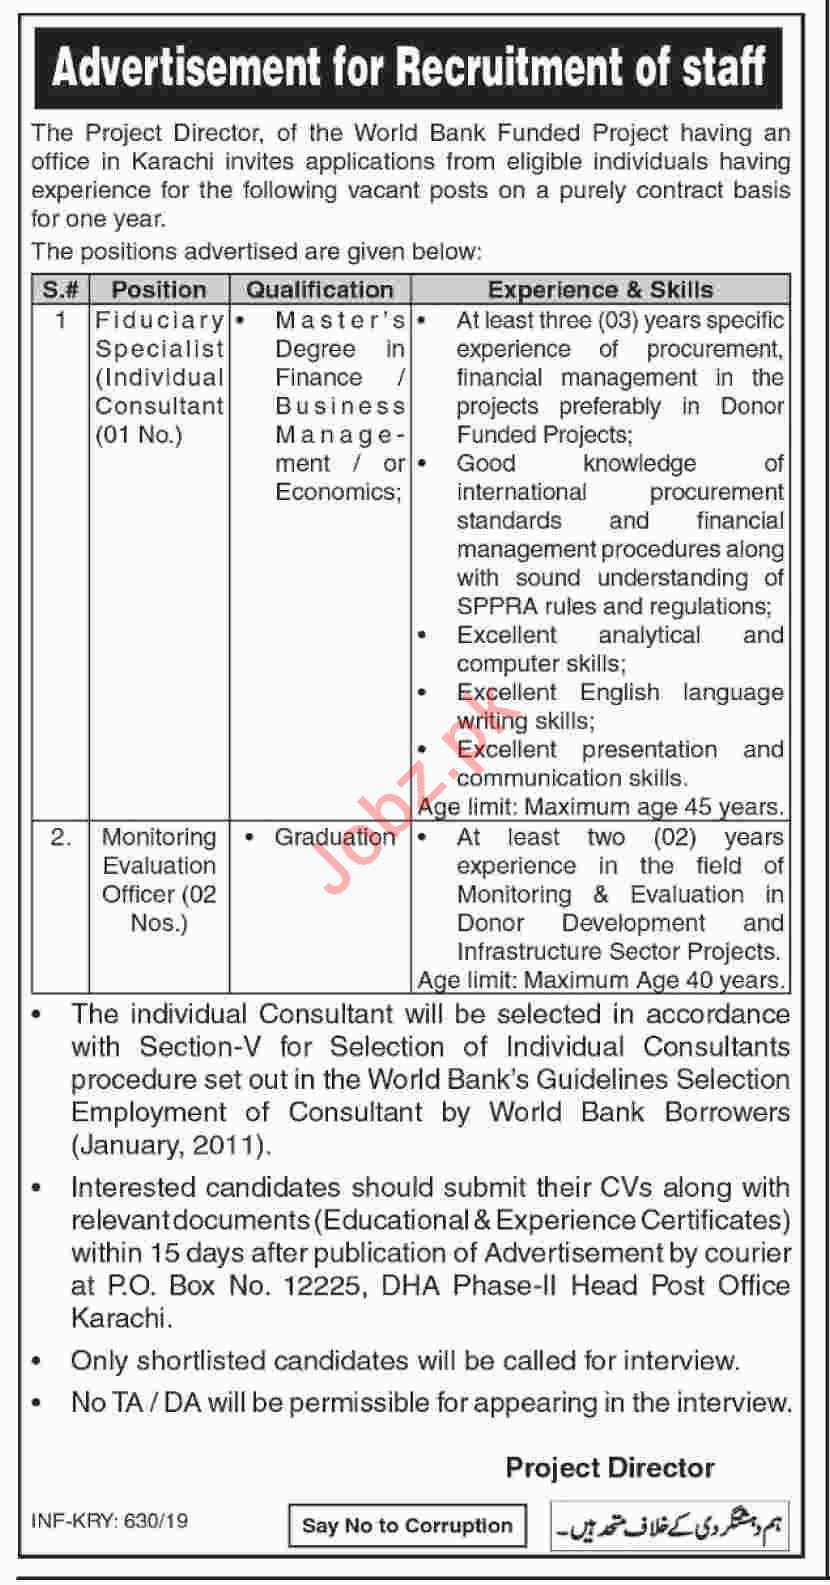 Fiduciary Specialist Jobs at World Bank Funded Project